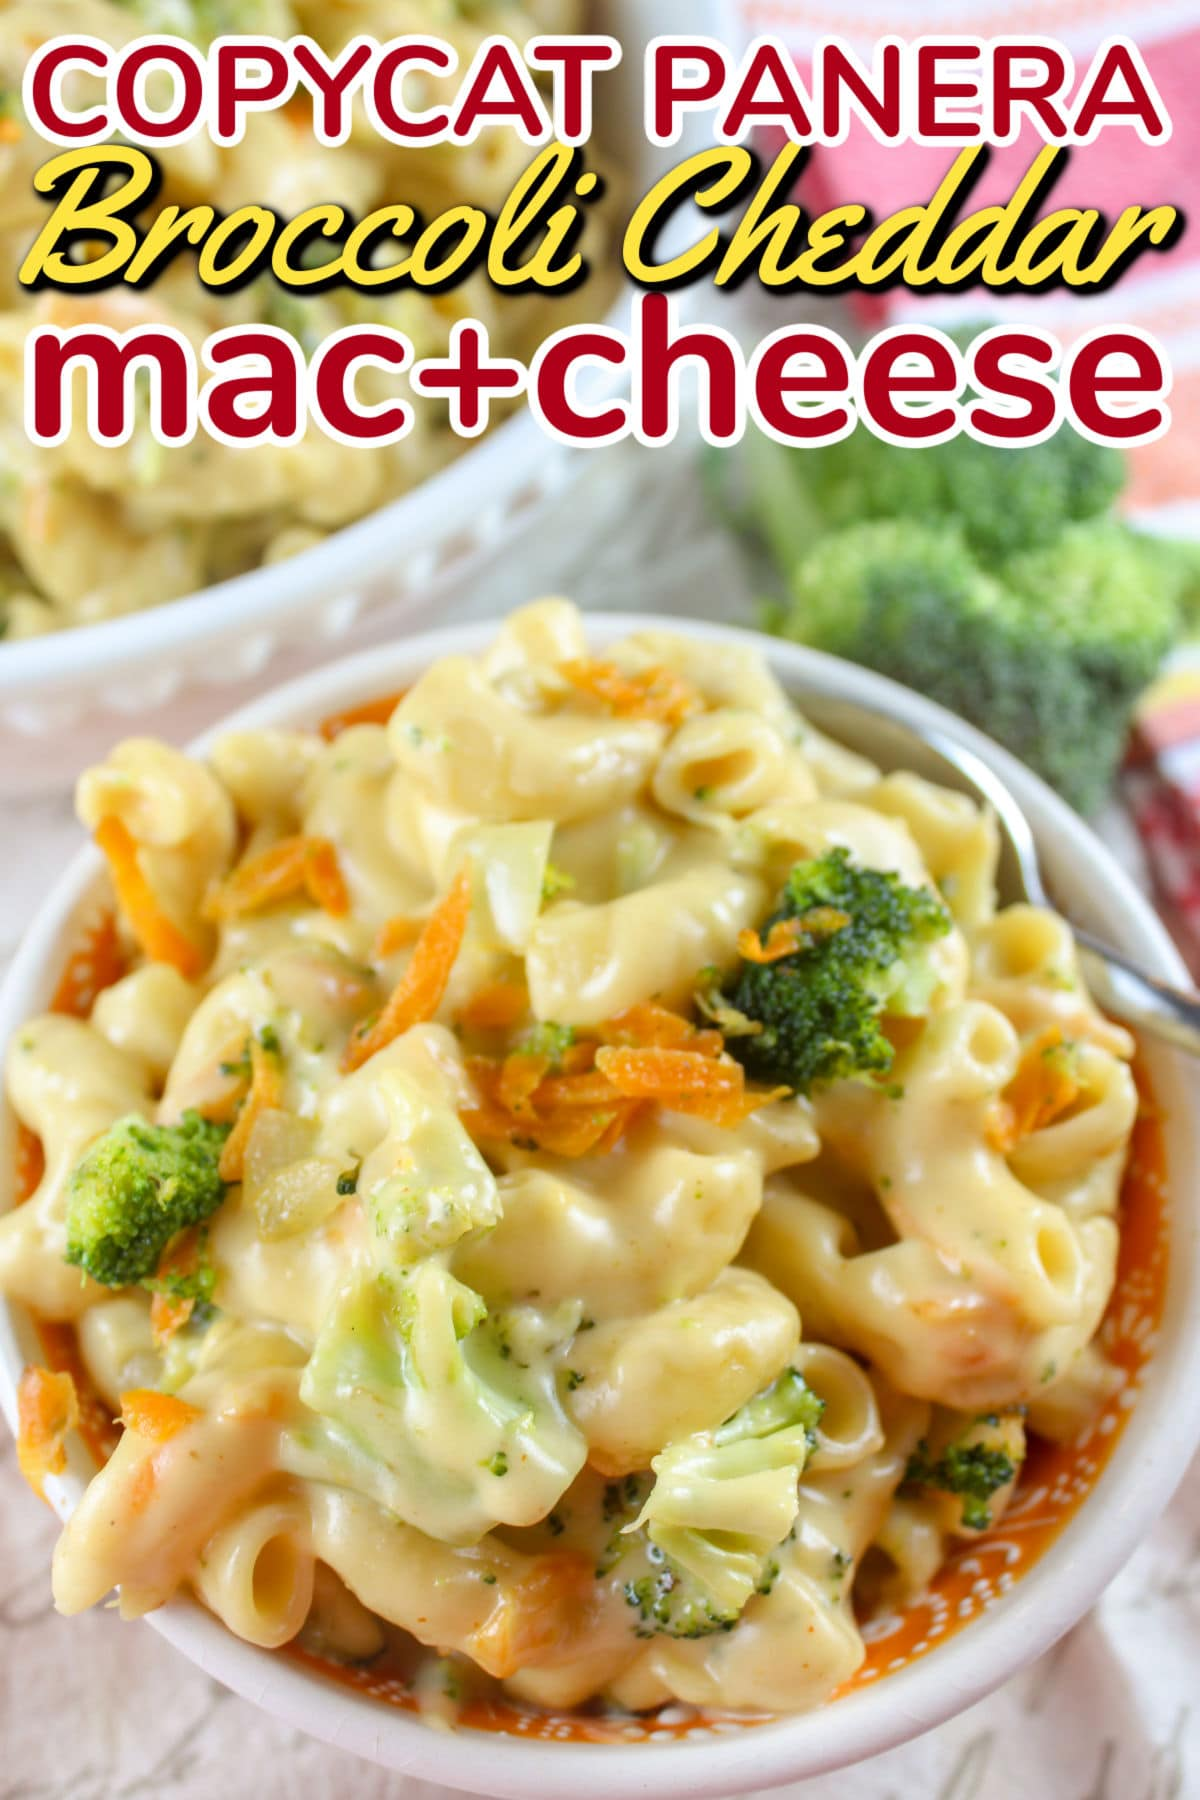 This copycat recipe of Panera's new Broccoli Cheddar Mac and Cheese is spot on perfection! They took their two fan favorites: mac & cheese and broccoli cheddar soup and mixed them together to make magic!  via @foodhussy